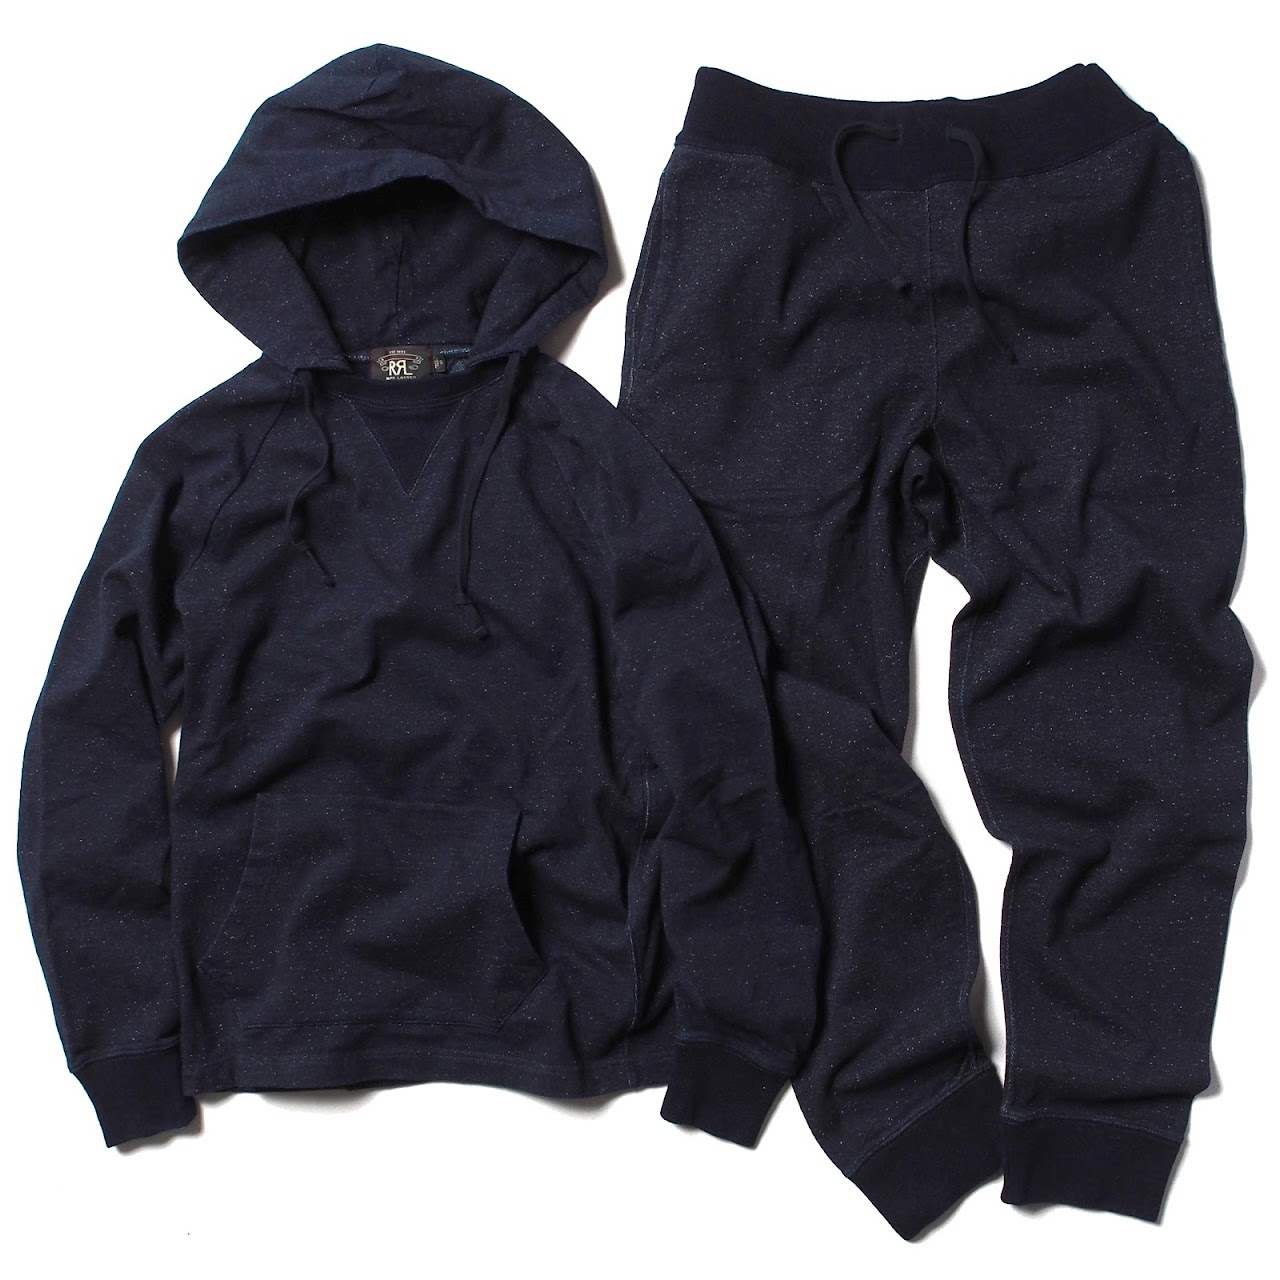 RRL / Indigo Slub Cotton Hoodie , Indigo Cotton Terry Jogger Pant